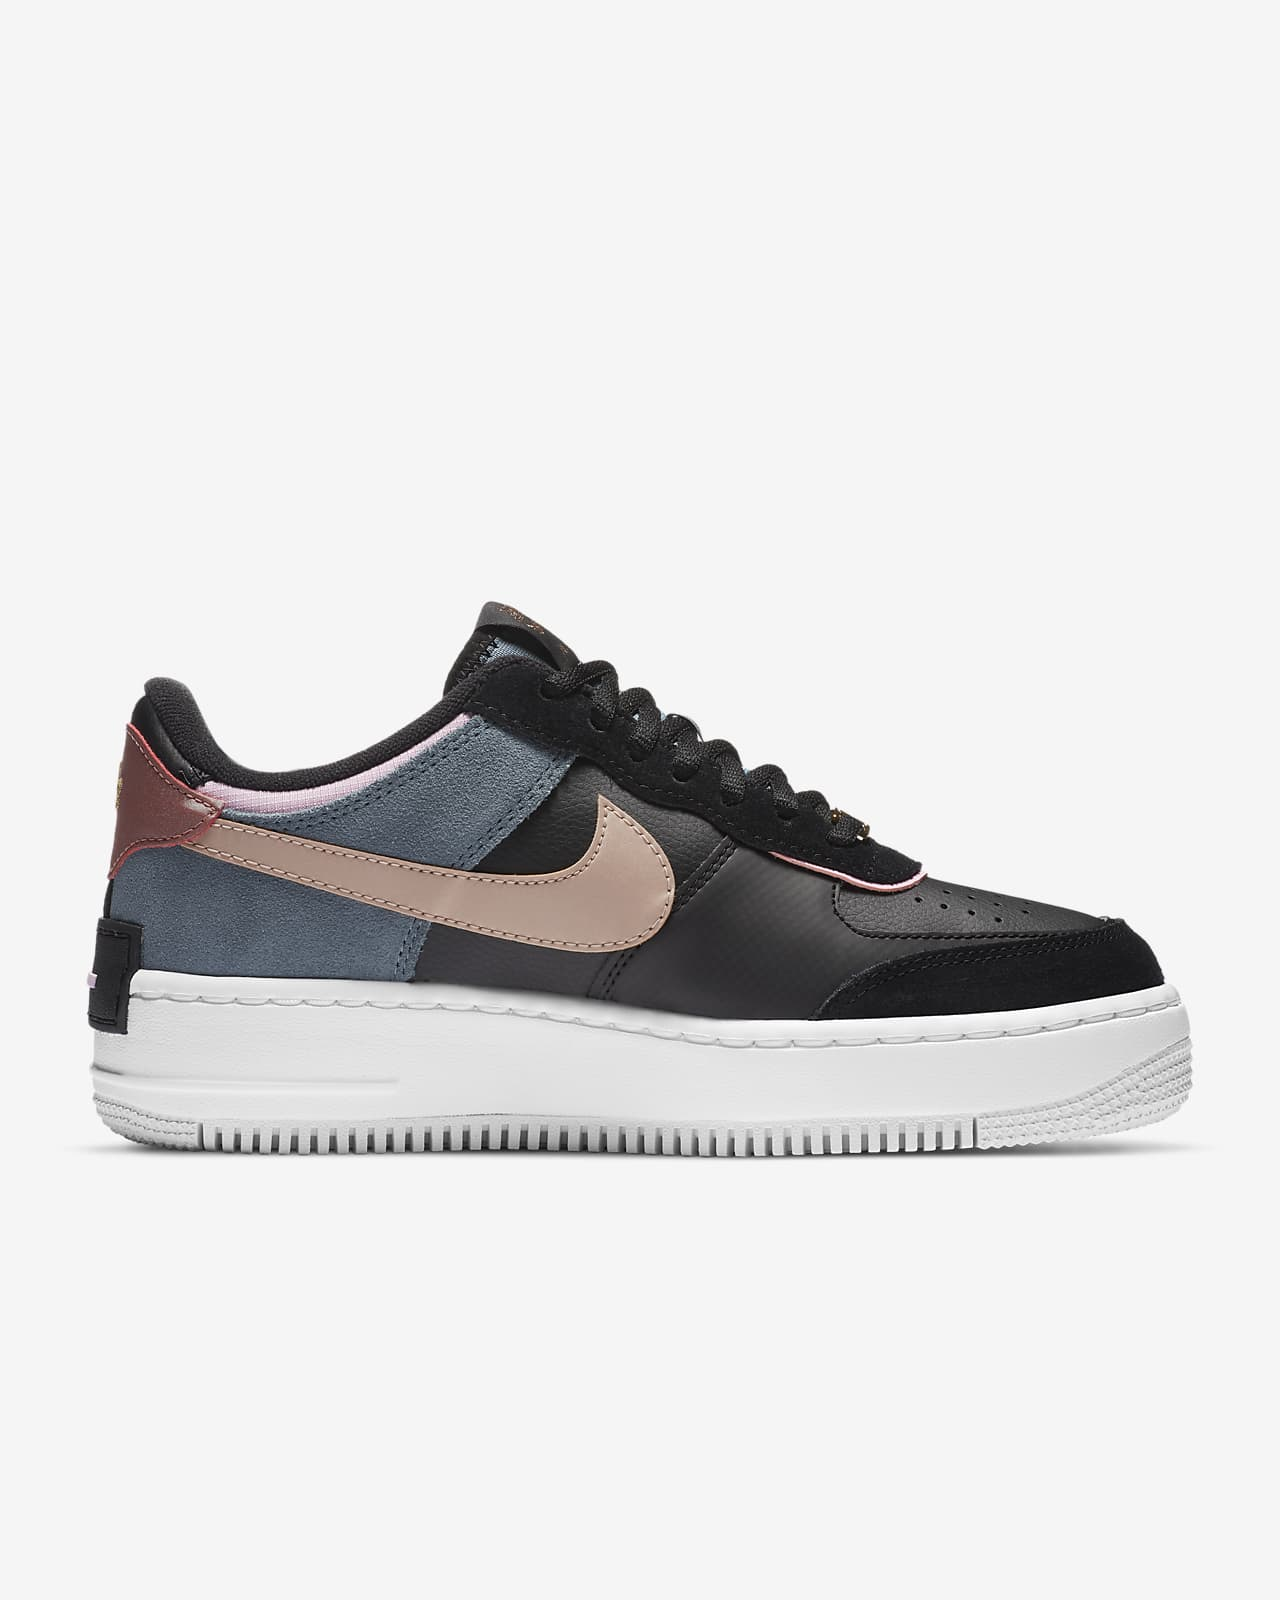 Nike Air Force 1 Shadow Women S Shoe Nike Com Nike air force ones air force 1 nike original puma suede nike air vapormax adidas superstar white nikes outfit of the day air jordans. nike air force 1 shadow women s shoe